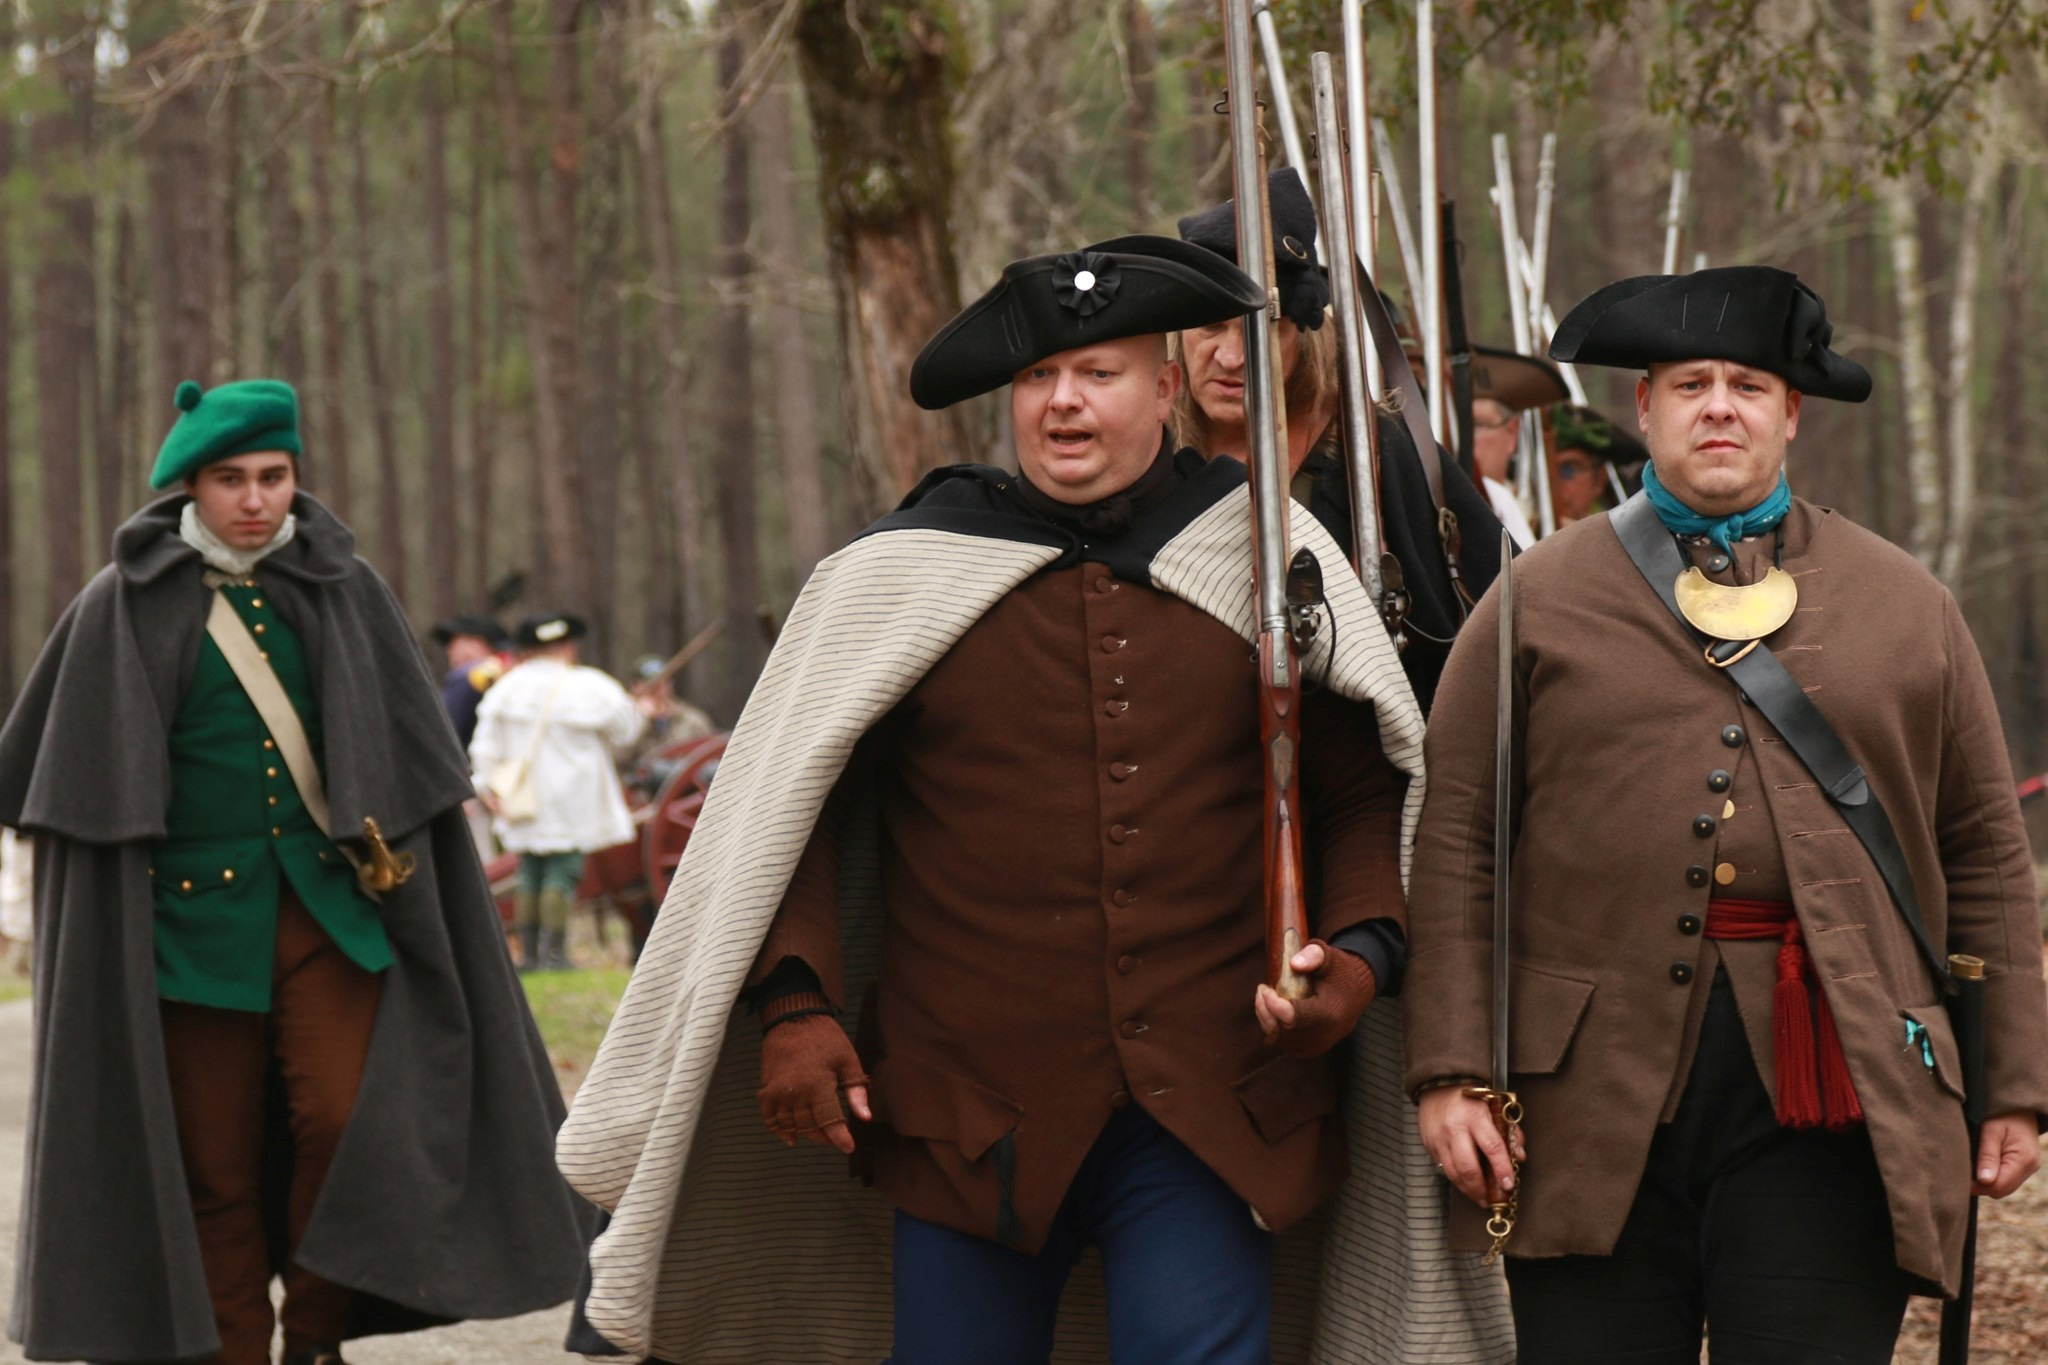 244th Anniversary of the battle of Moores Creek Bridge